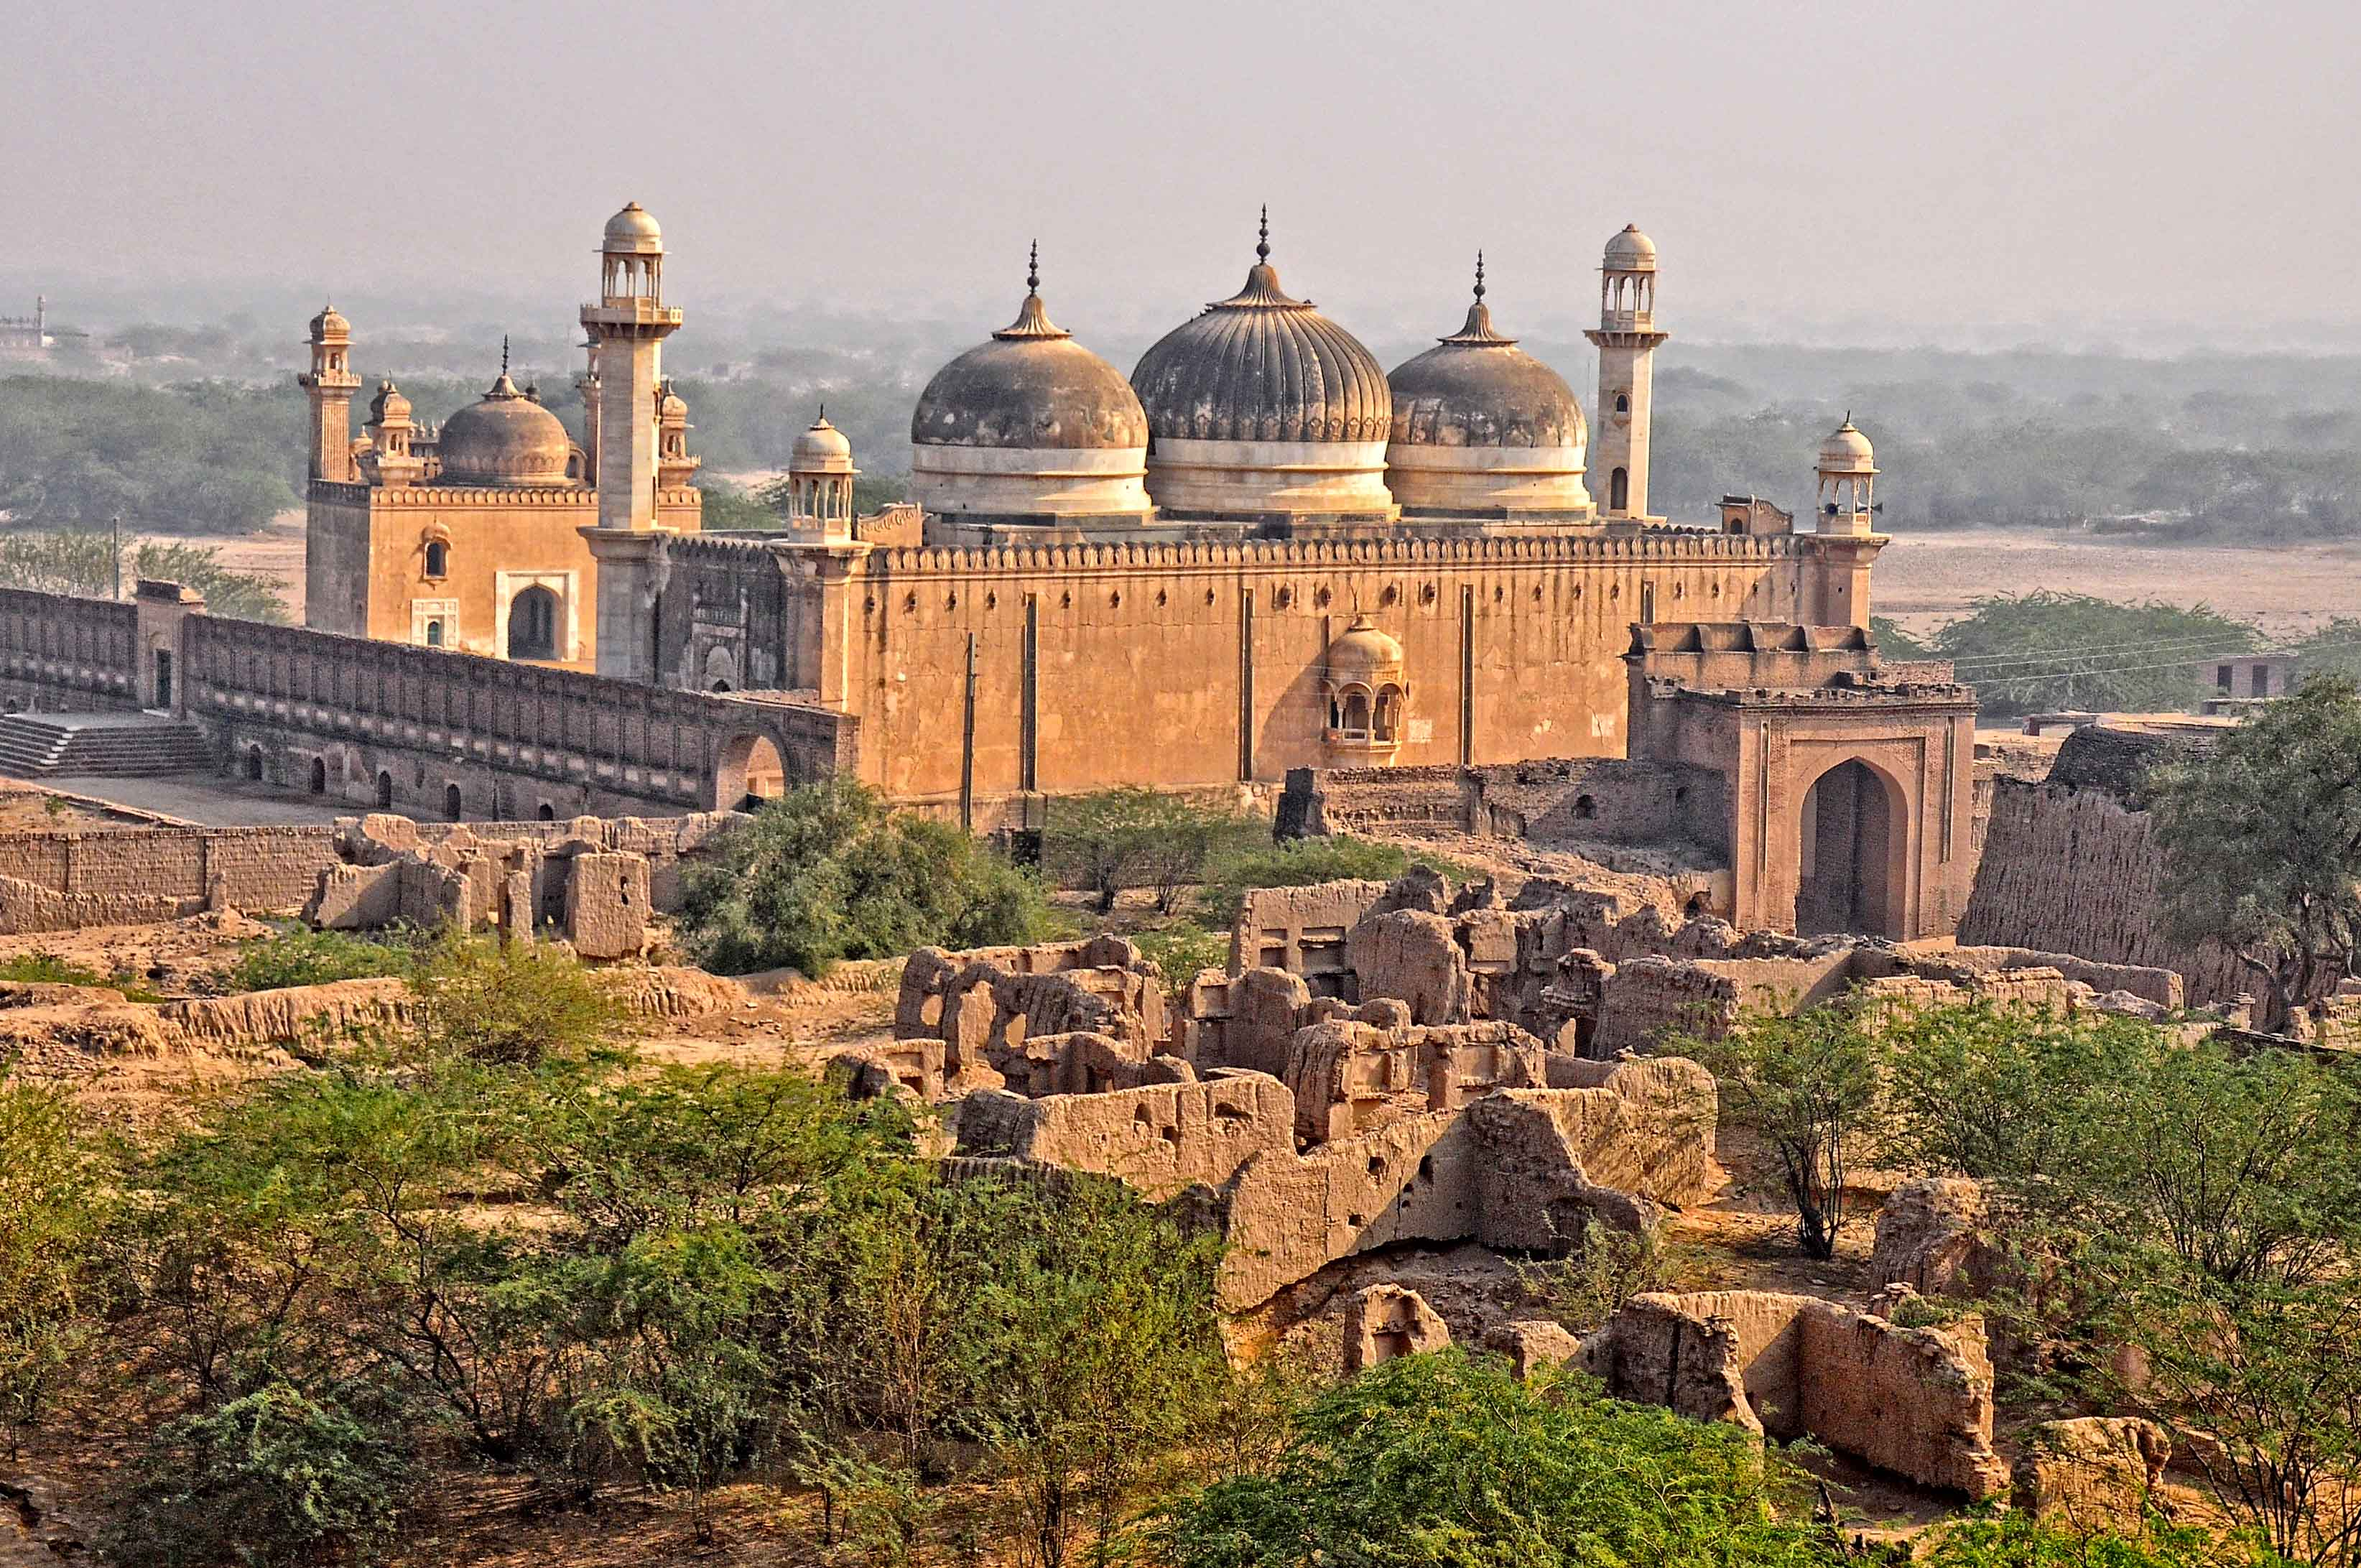 dating places in bahawalpur The nawabs left a rich architectural legacy, and bahawalpur is now known for its monuments dating from that period  bahawalpur mangoes, citrus,.